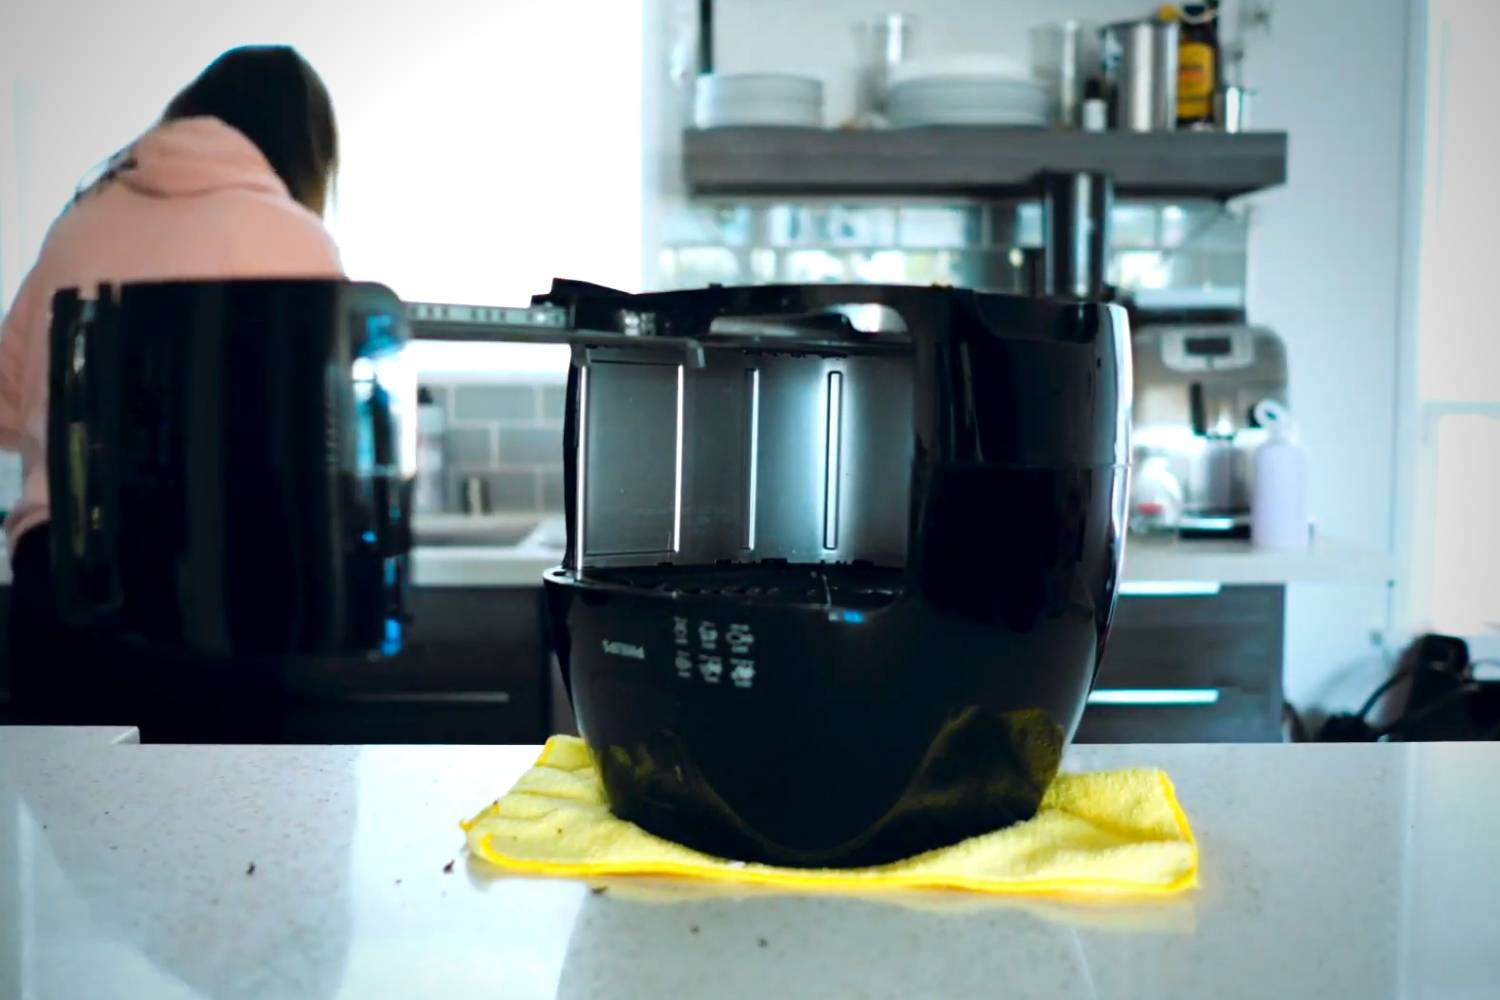 Deep Cleaning Your Air Fryer